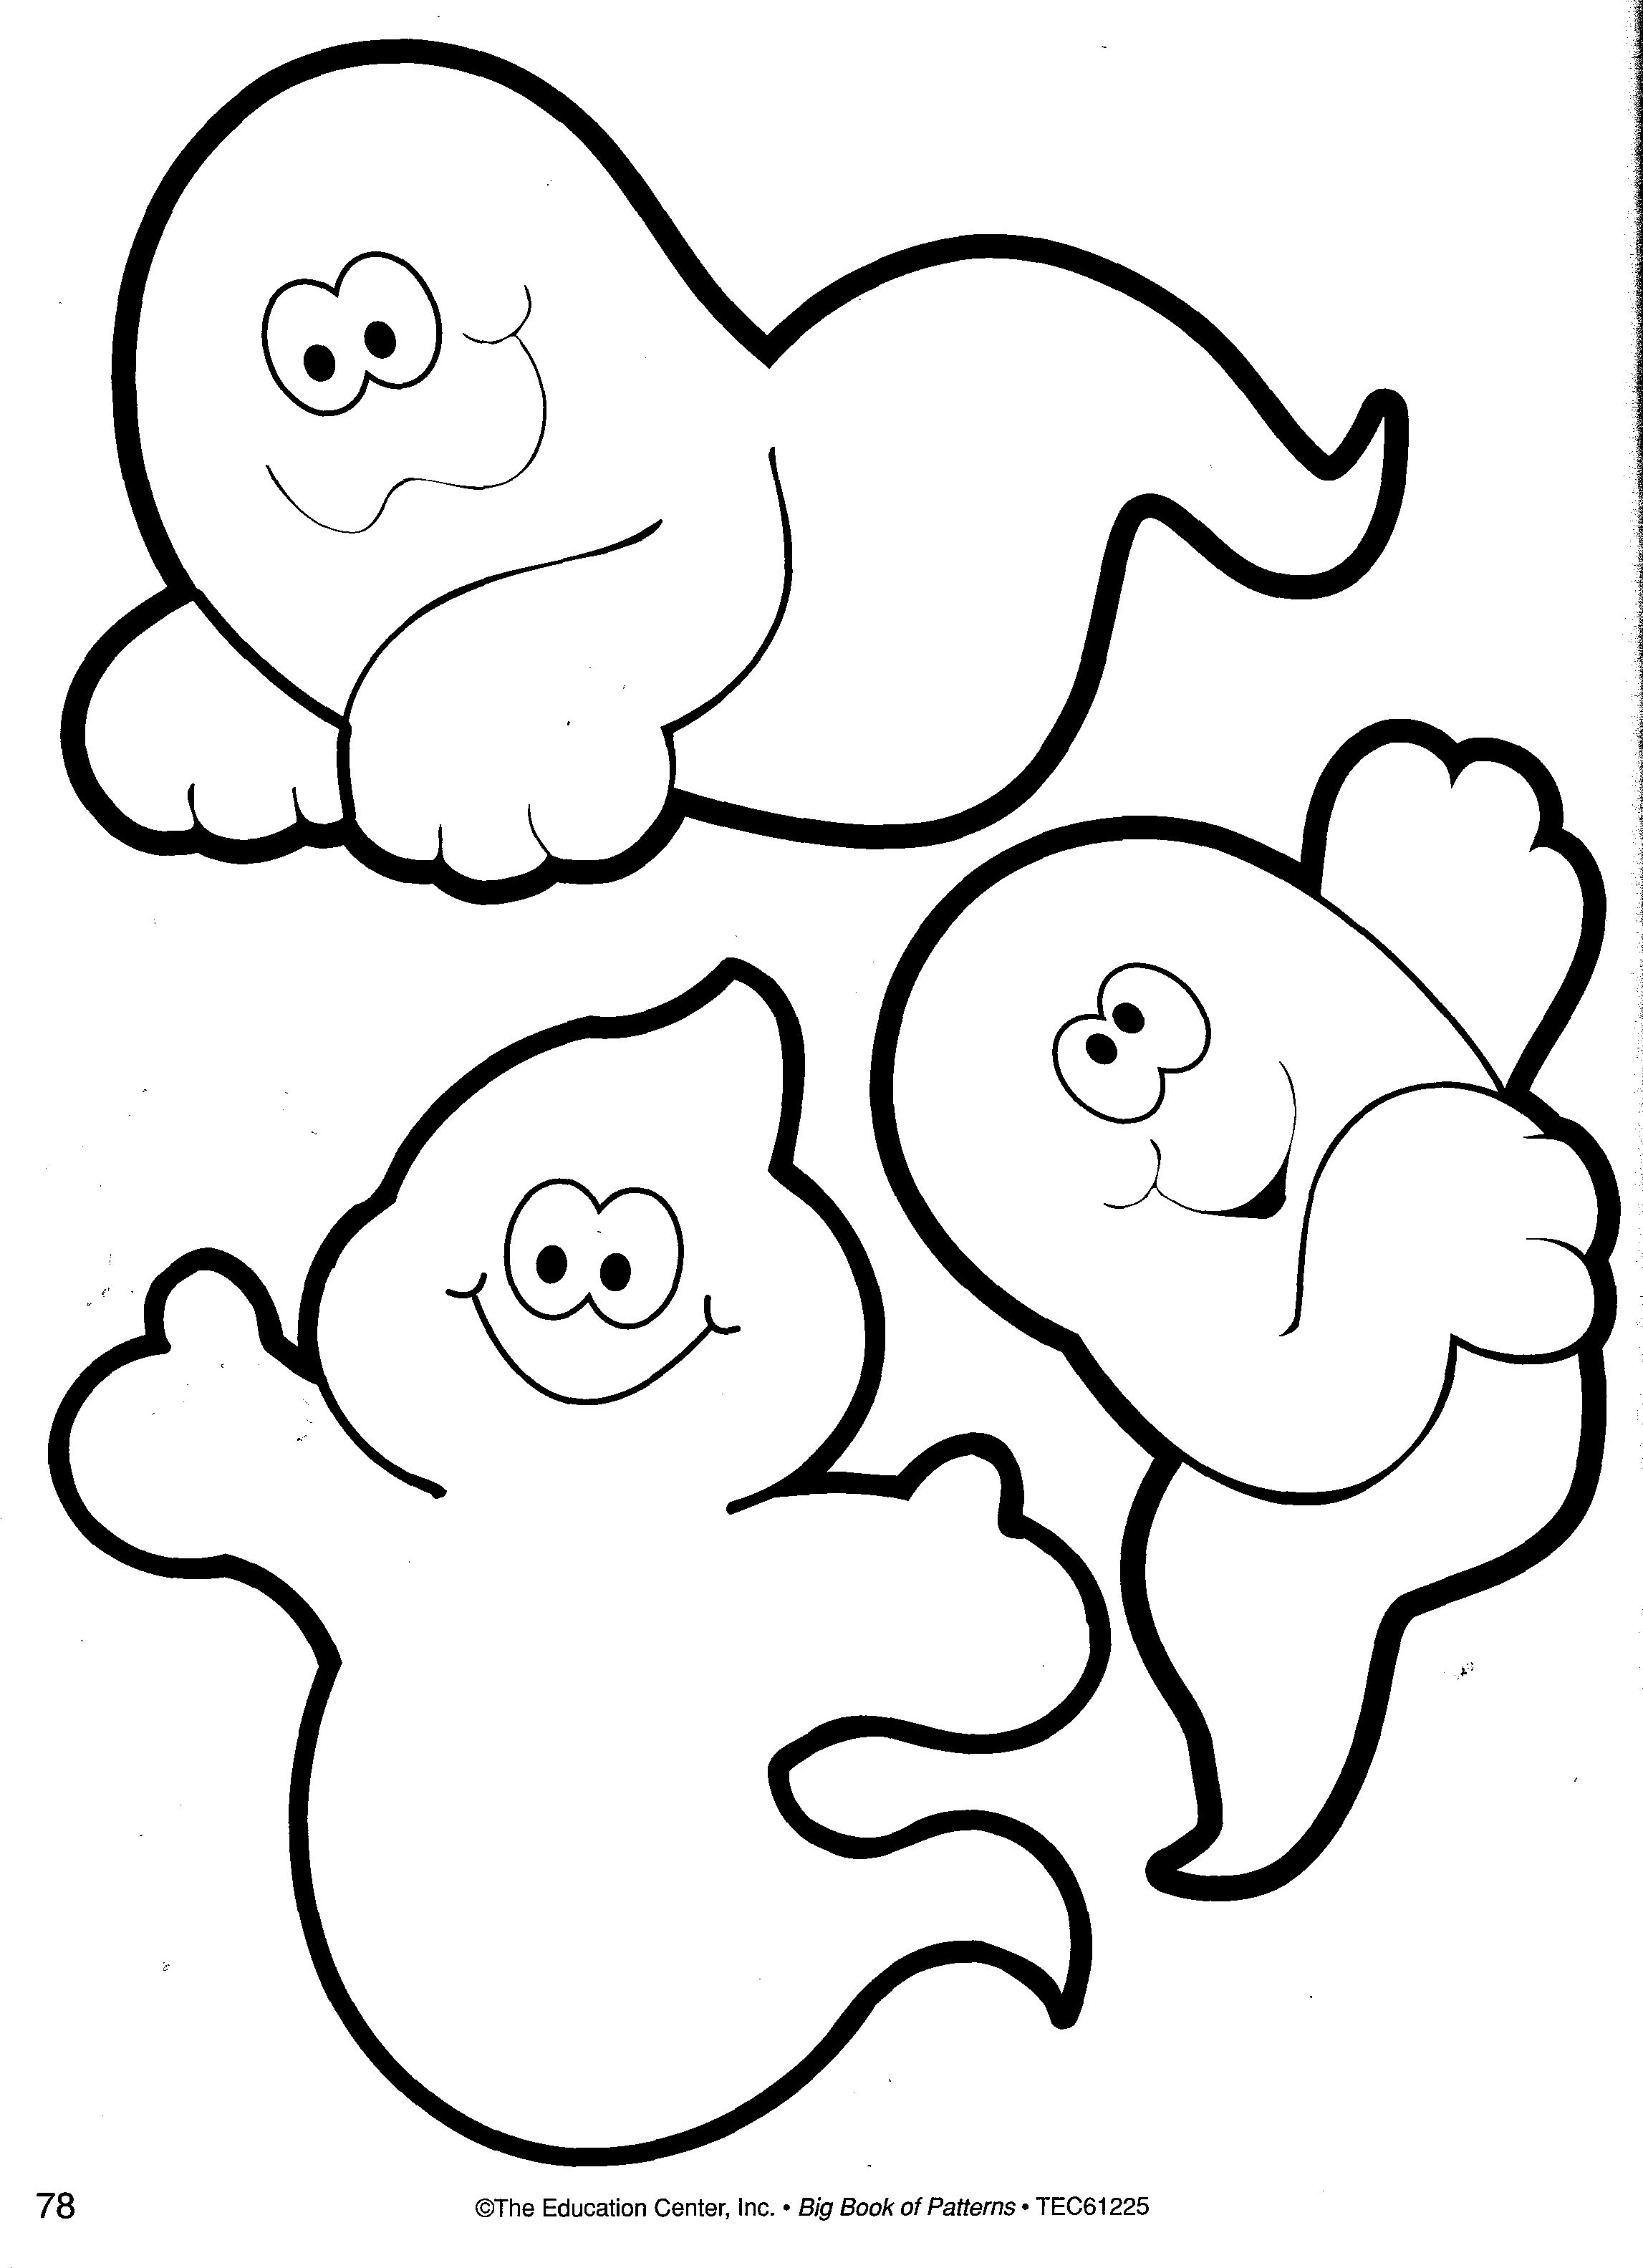 Halloween Patterns Ghosts Use These Cute Patterns For Your Bulletin Boards Craft Projects